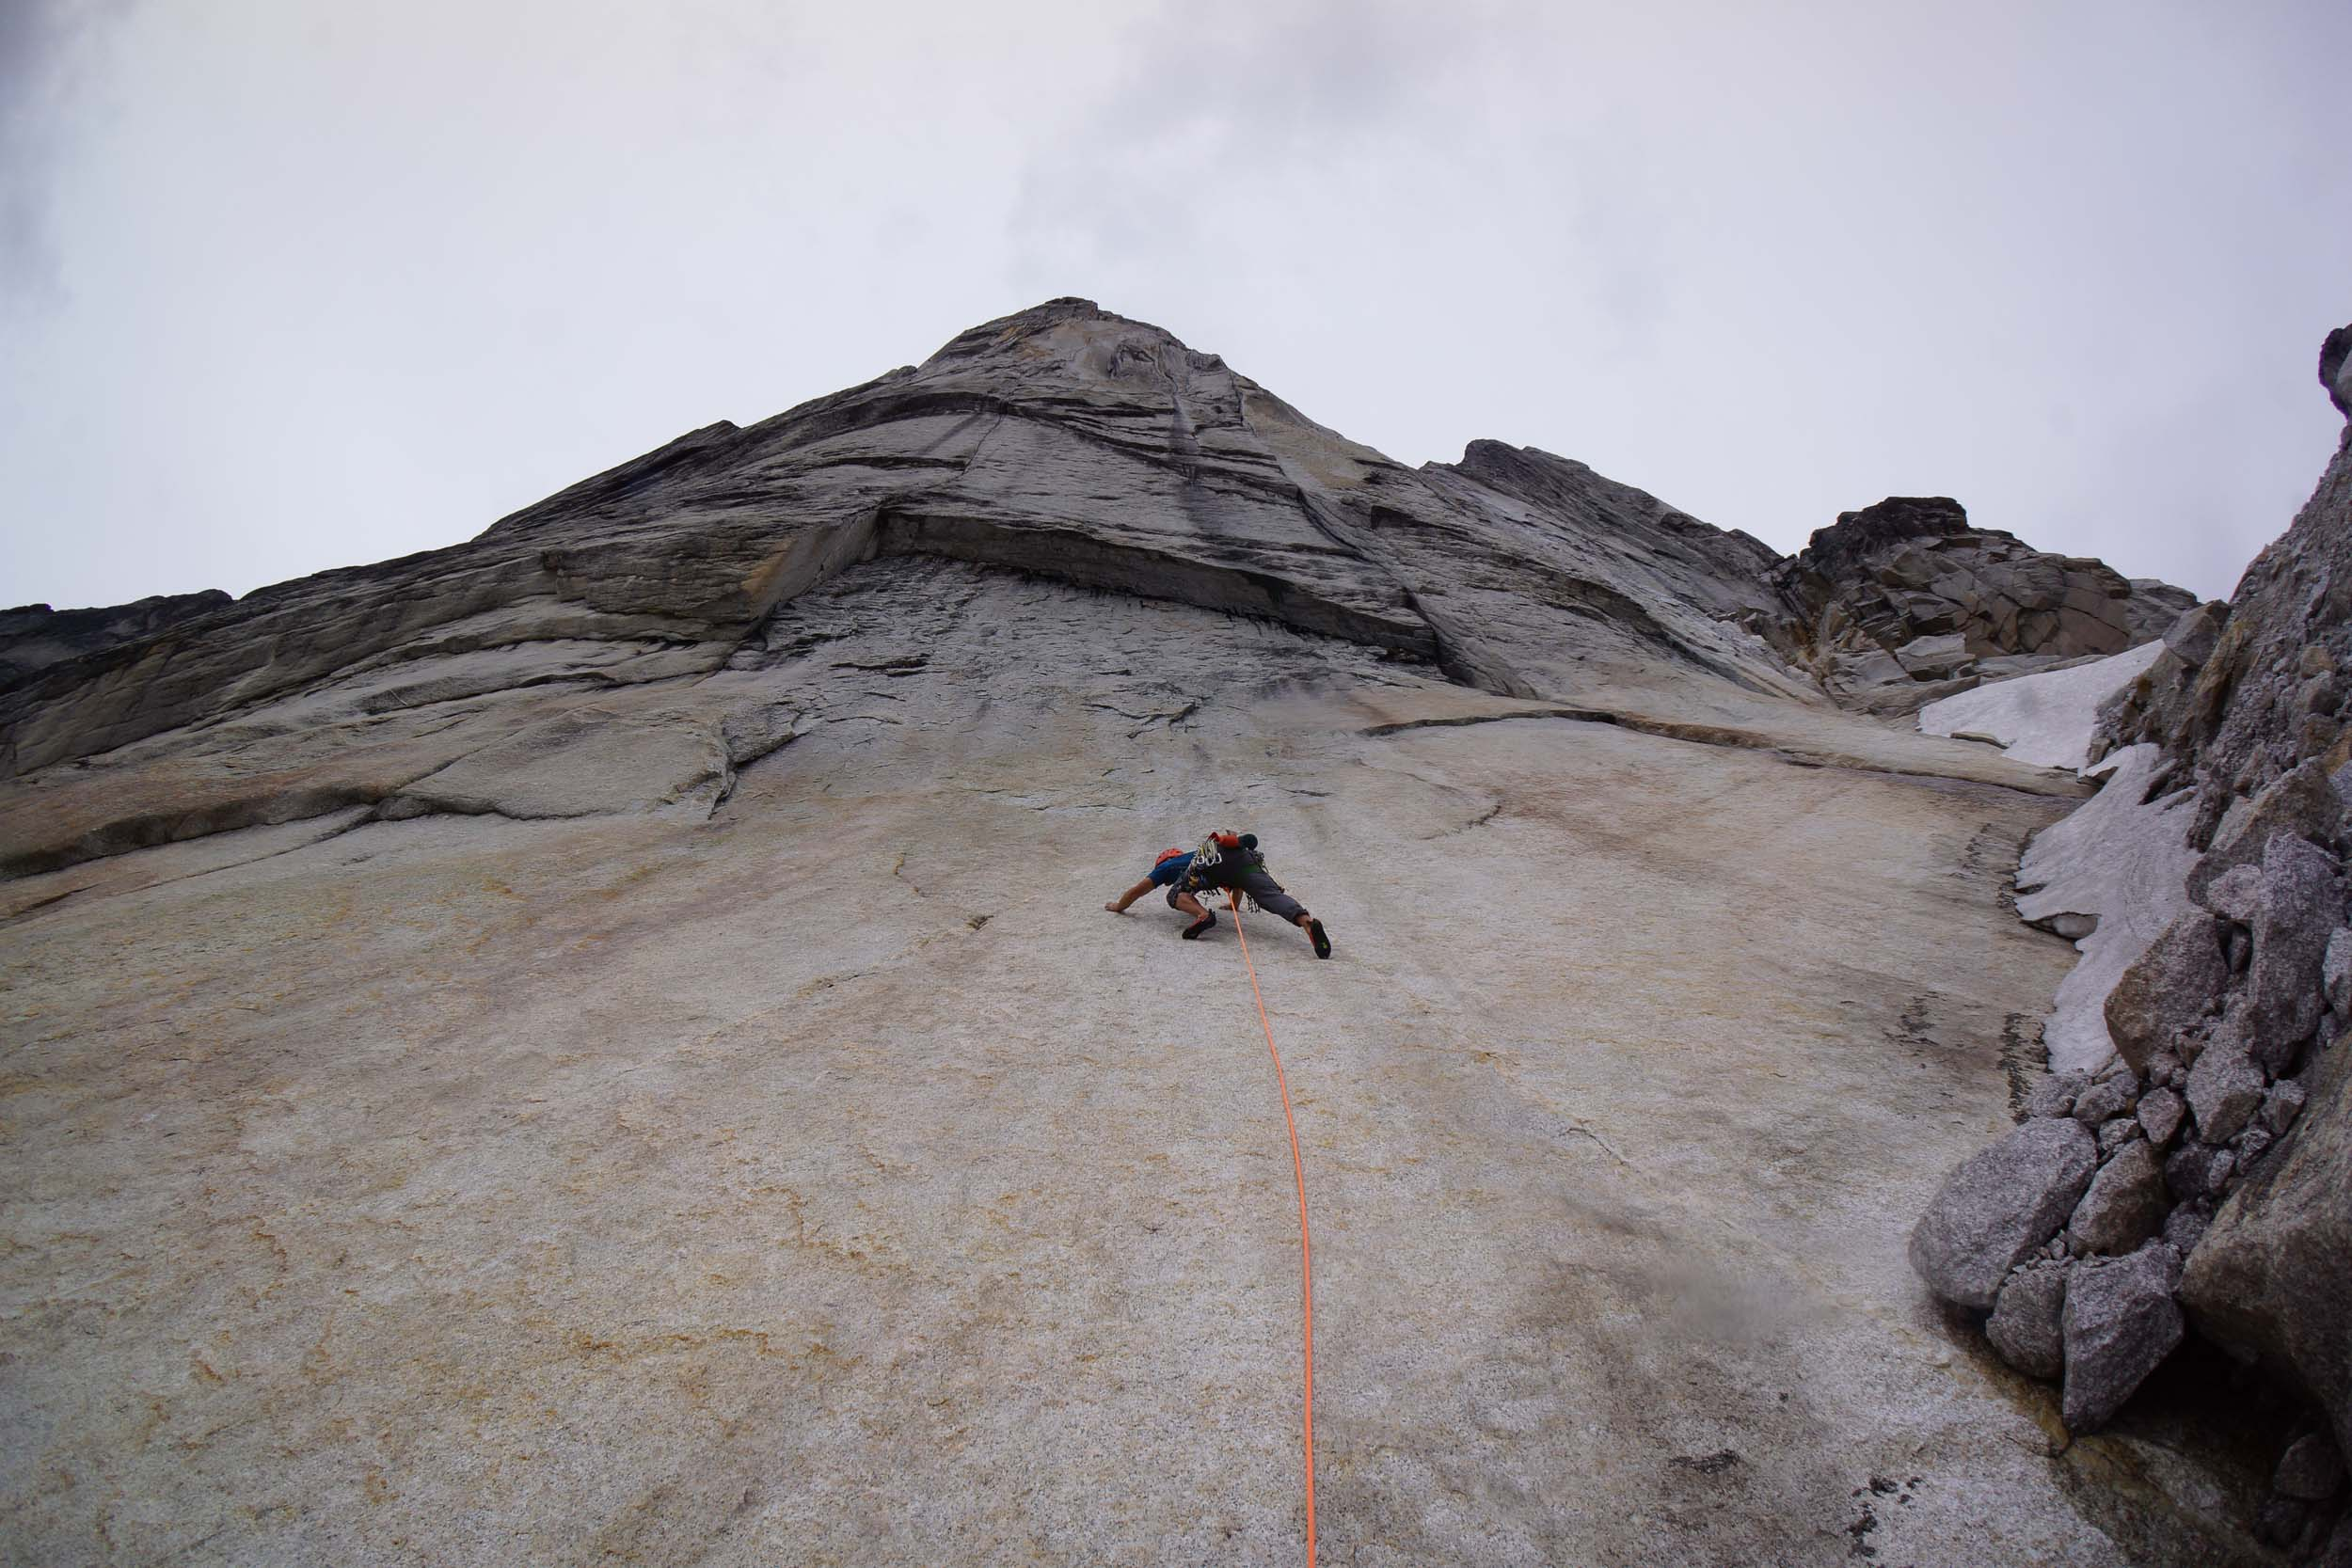 My first pitch in the Bugaboo's where I un-shamefully backed down because of the ground-fall potential. This pitch ended up being a 5.11- solo.